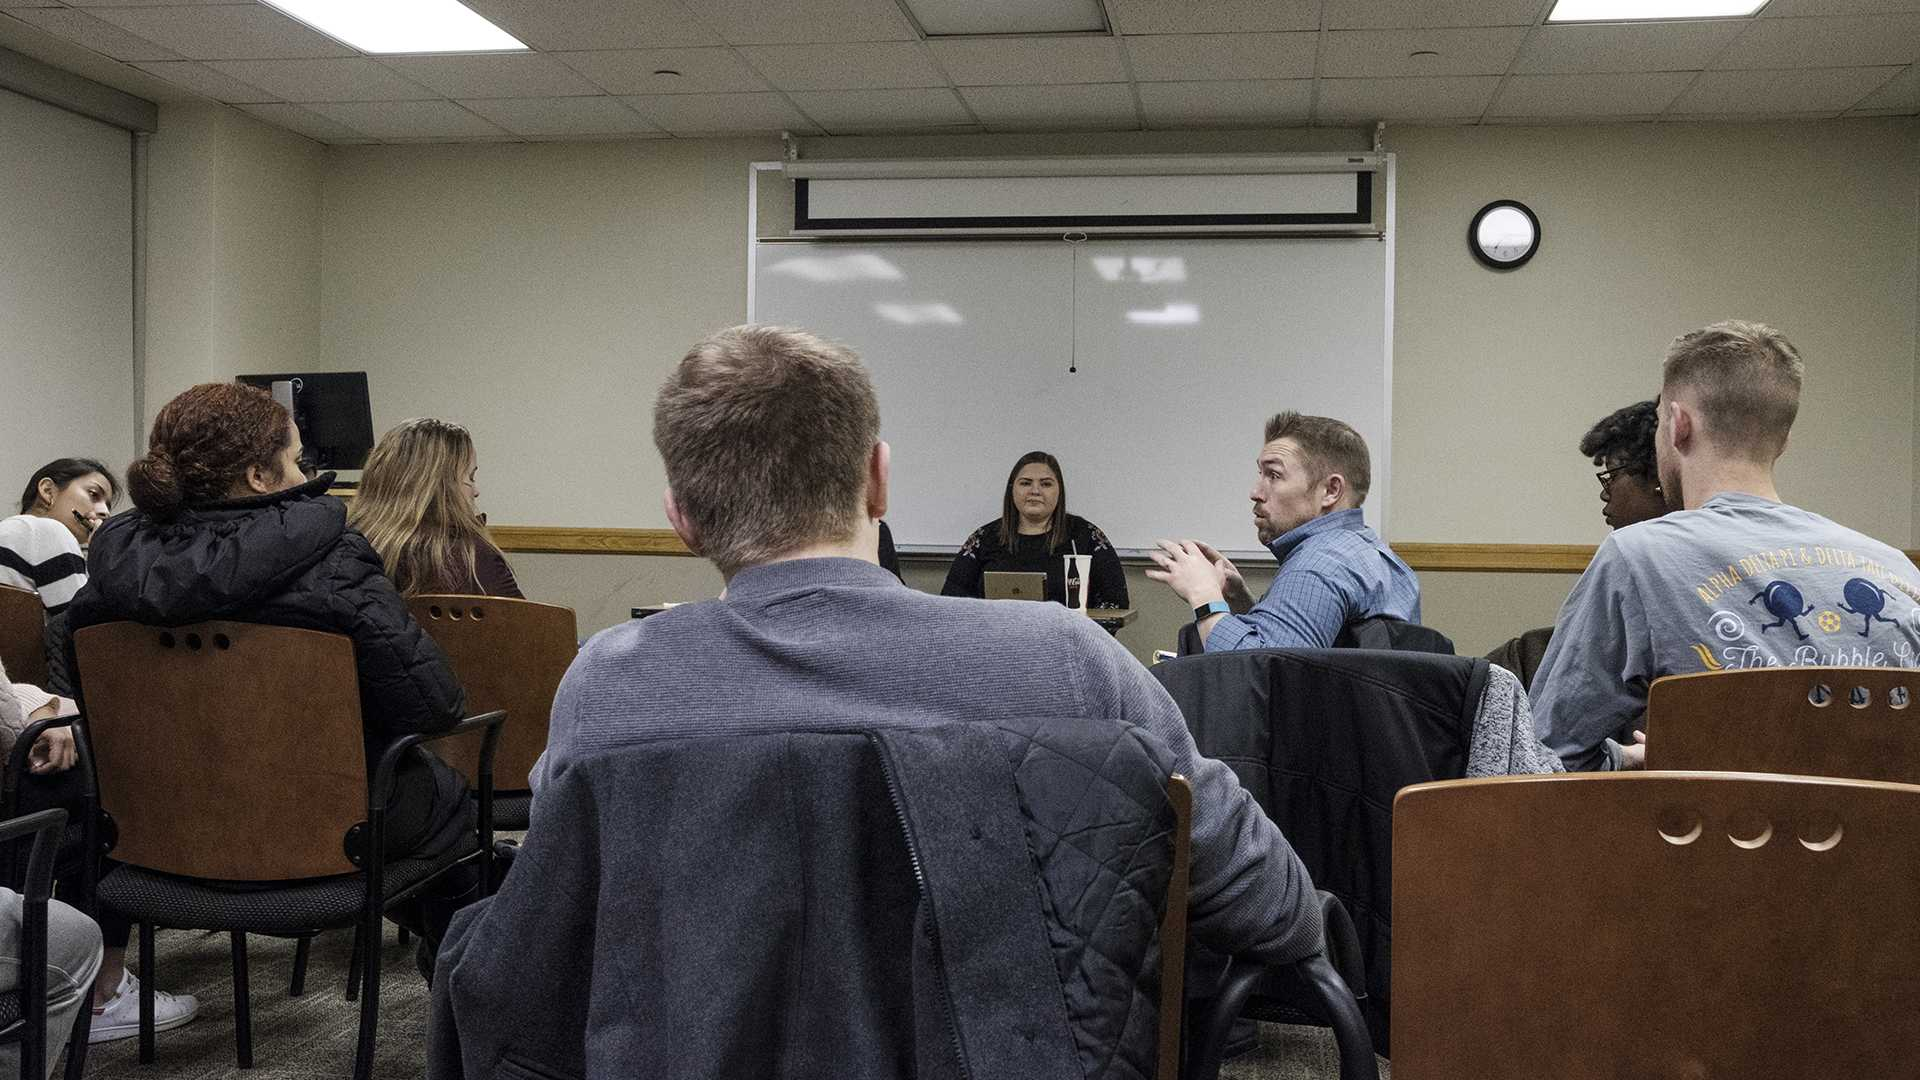 RVAP director Adam Robinson speaks during a UISG town hall meeting at the Iowa Memorial Union on Wednesday, Dec. 5, 2017. During the meeting attendees discussed issues relating to sexual assault and available resources on campus and in the community. (Nick Rohlman/The Daily Iowan)